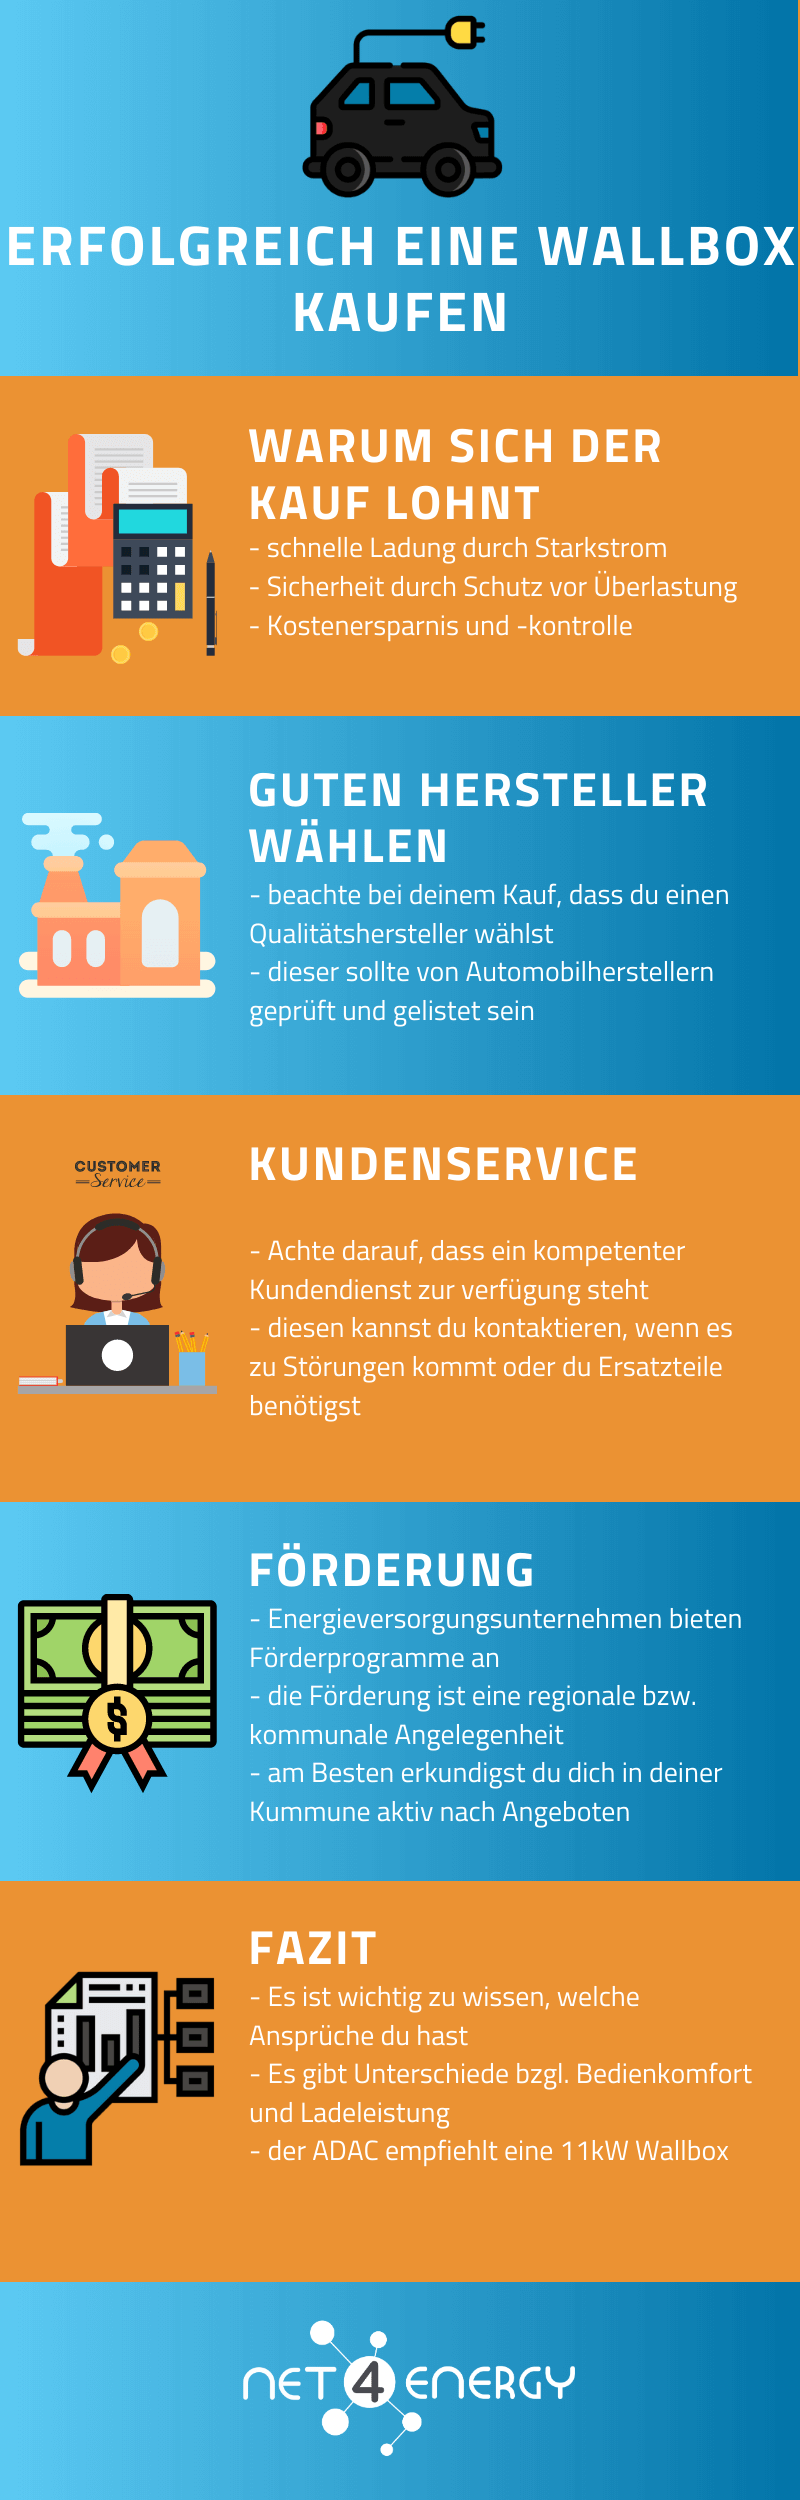 wallbox-kaufen-infografik-net4energy